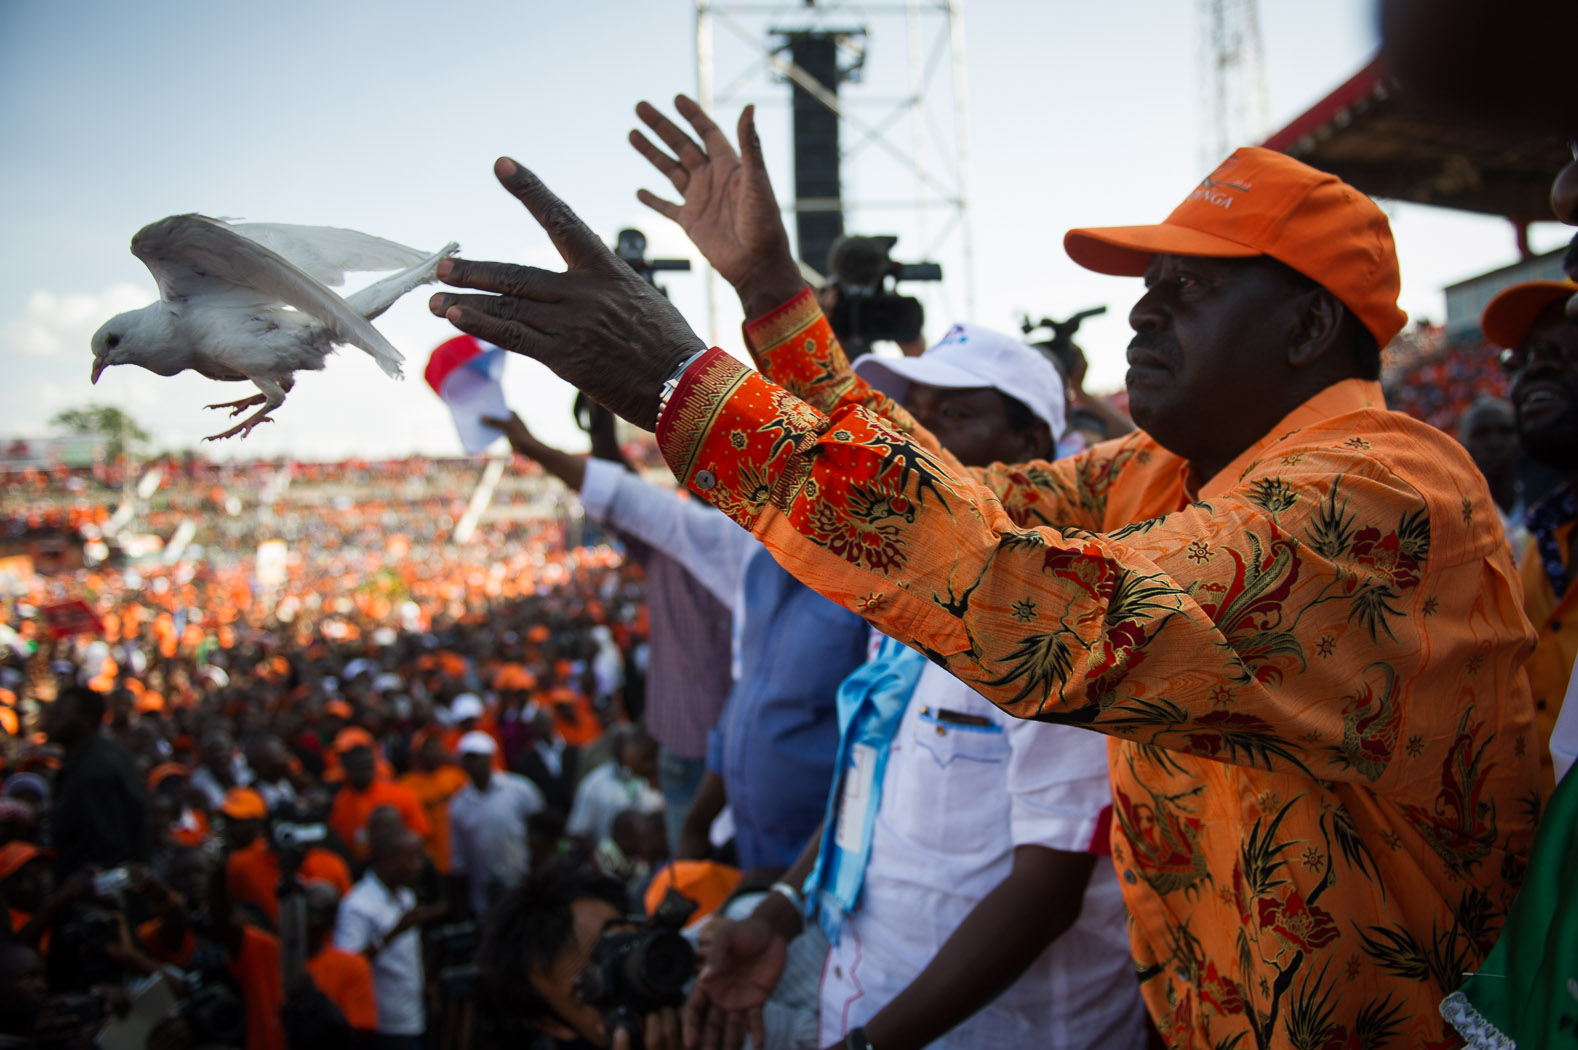 Following the electoral commission's announcement of Kenyatta's outright majority, thus making him President-Elect, opposition candidate Raila Odinga gave a press conference saying that his party would contest the result. He urged his supporters to have faith in the Supreme Court, and not take to the streets.  (Odinga pictured here in Nairobi during his final rally prior to voting.)